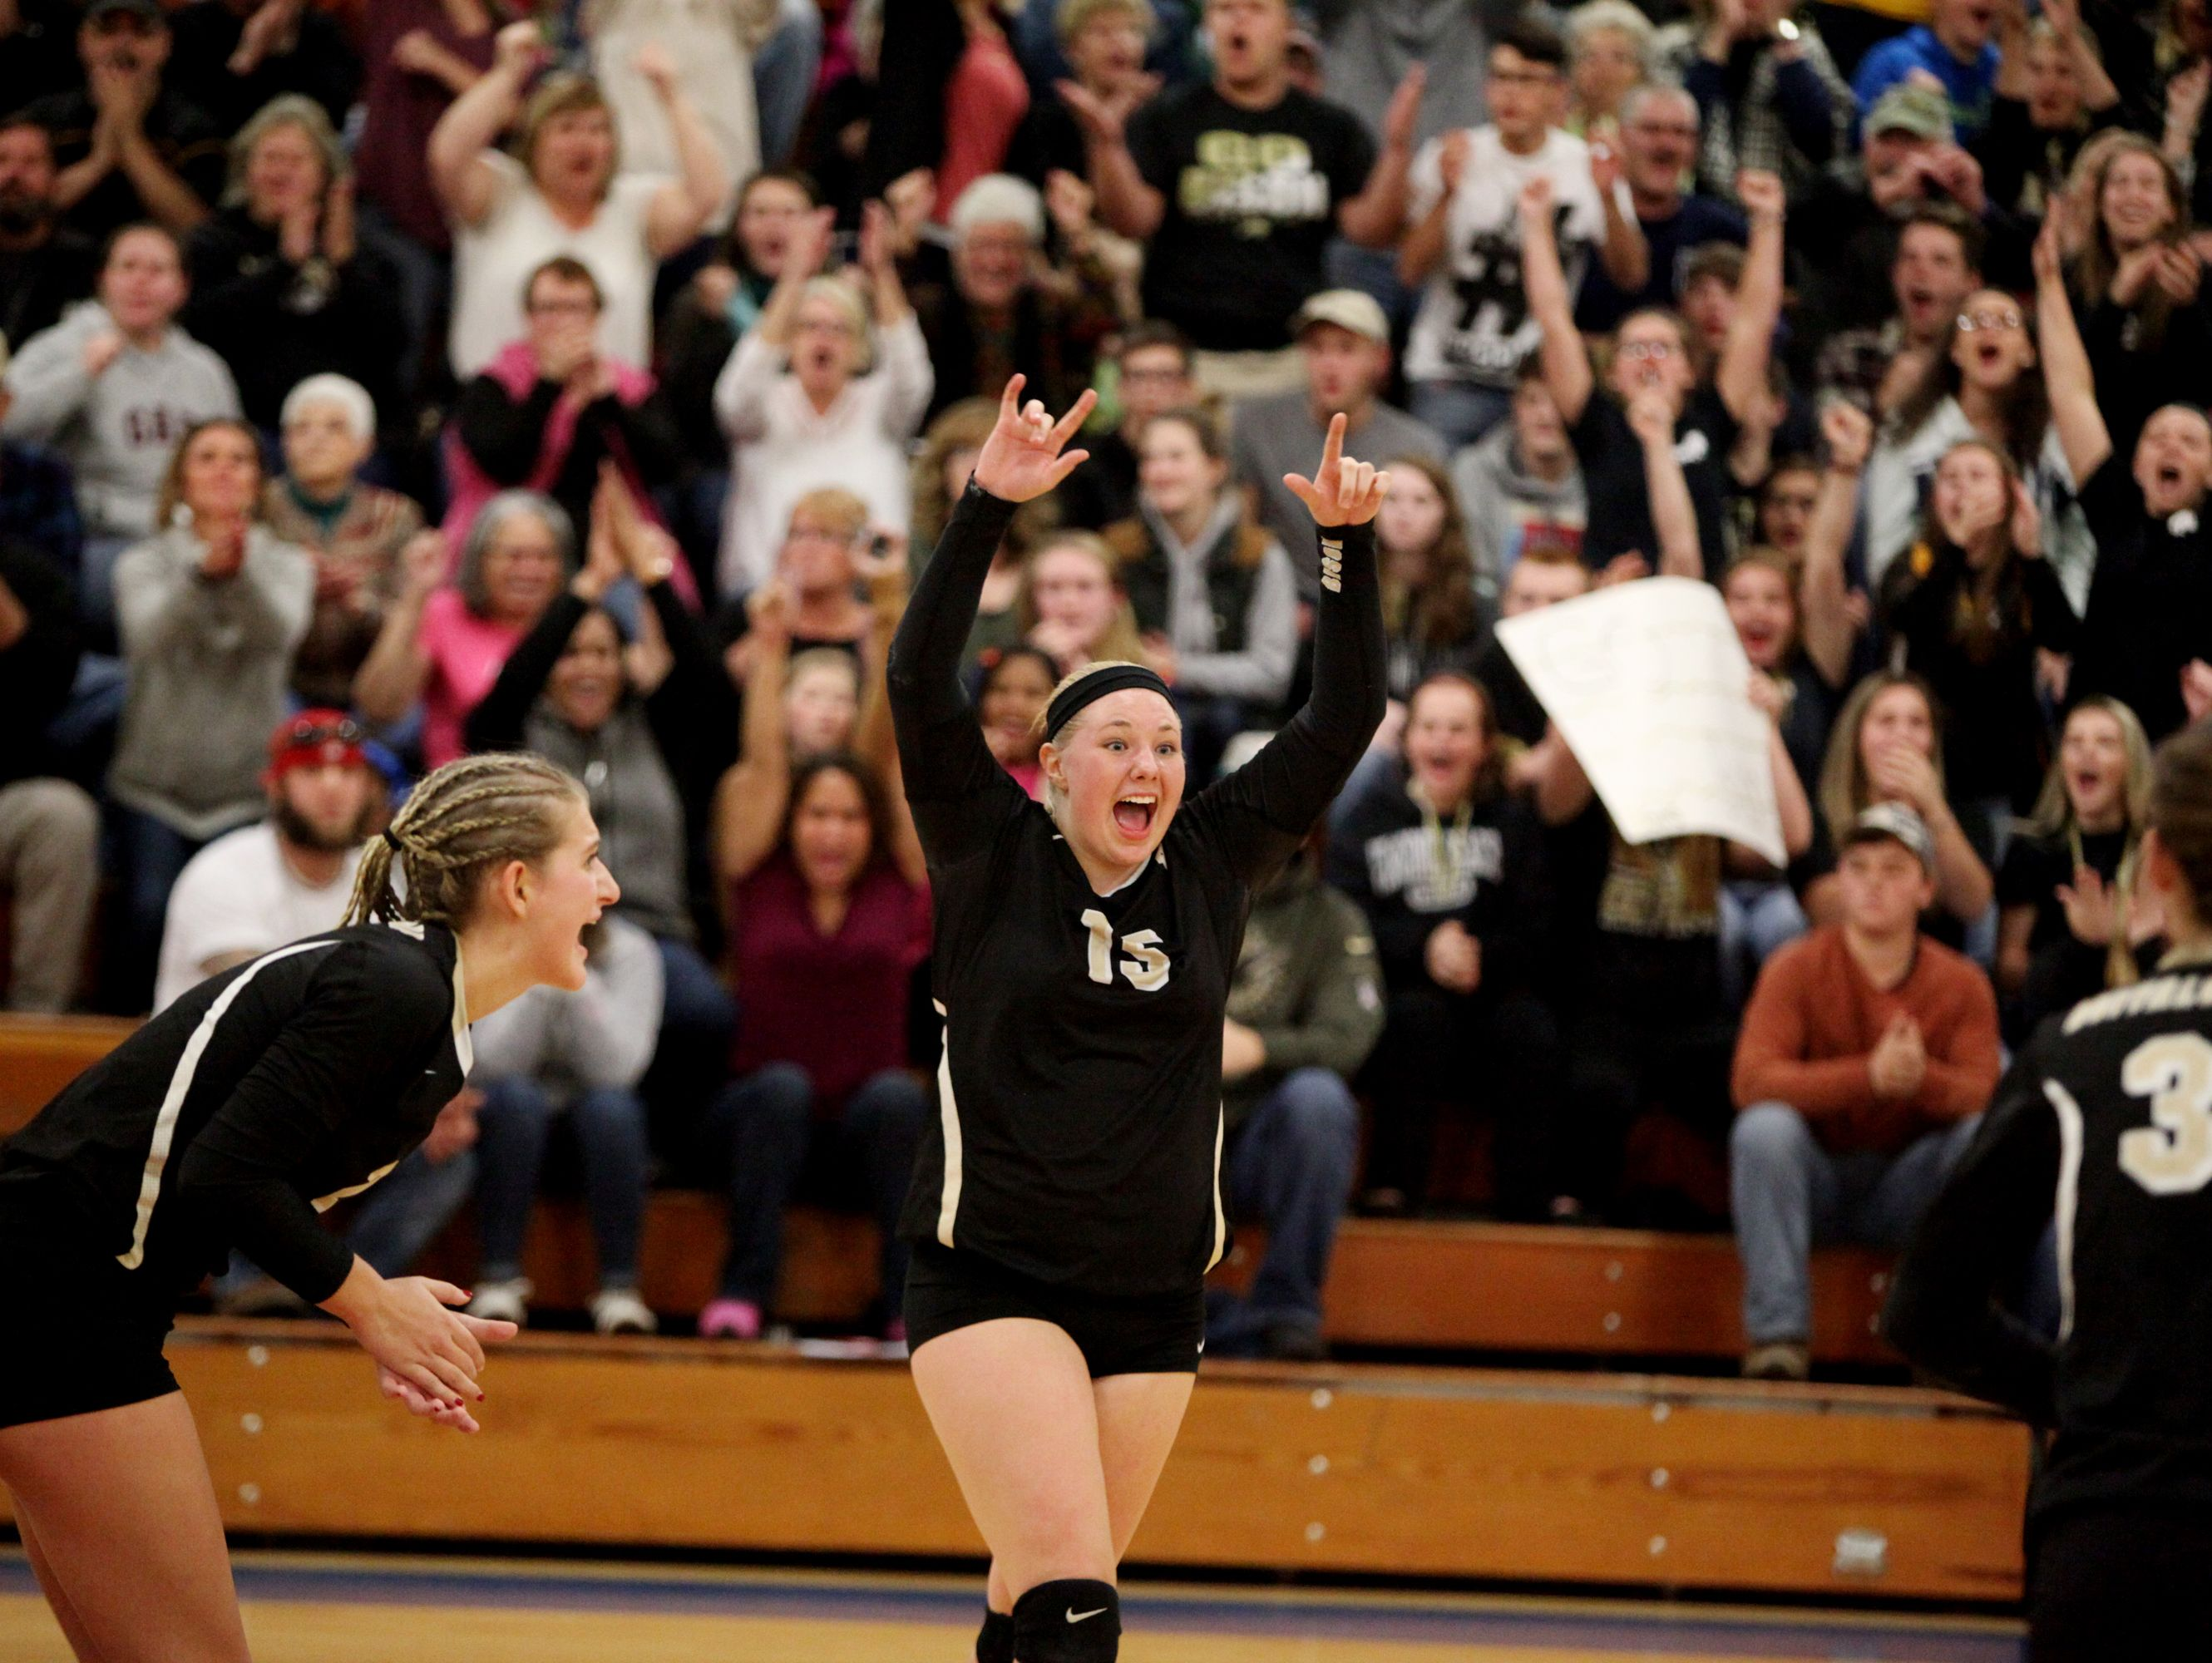 Buffalo Gap's Camille Ashby celebrates a point during the 2A girls volleyball championship at R.E. Lee High School in Staunton on Saturday Nov. 12, 2016.